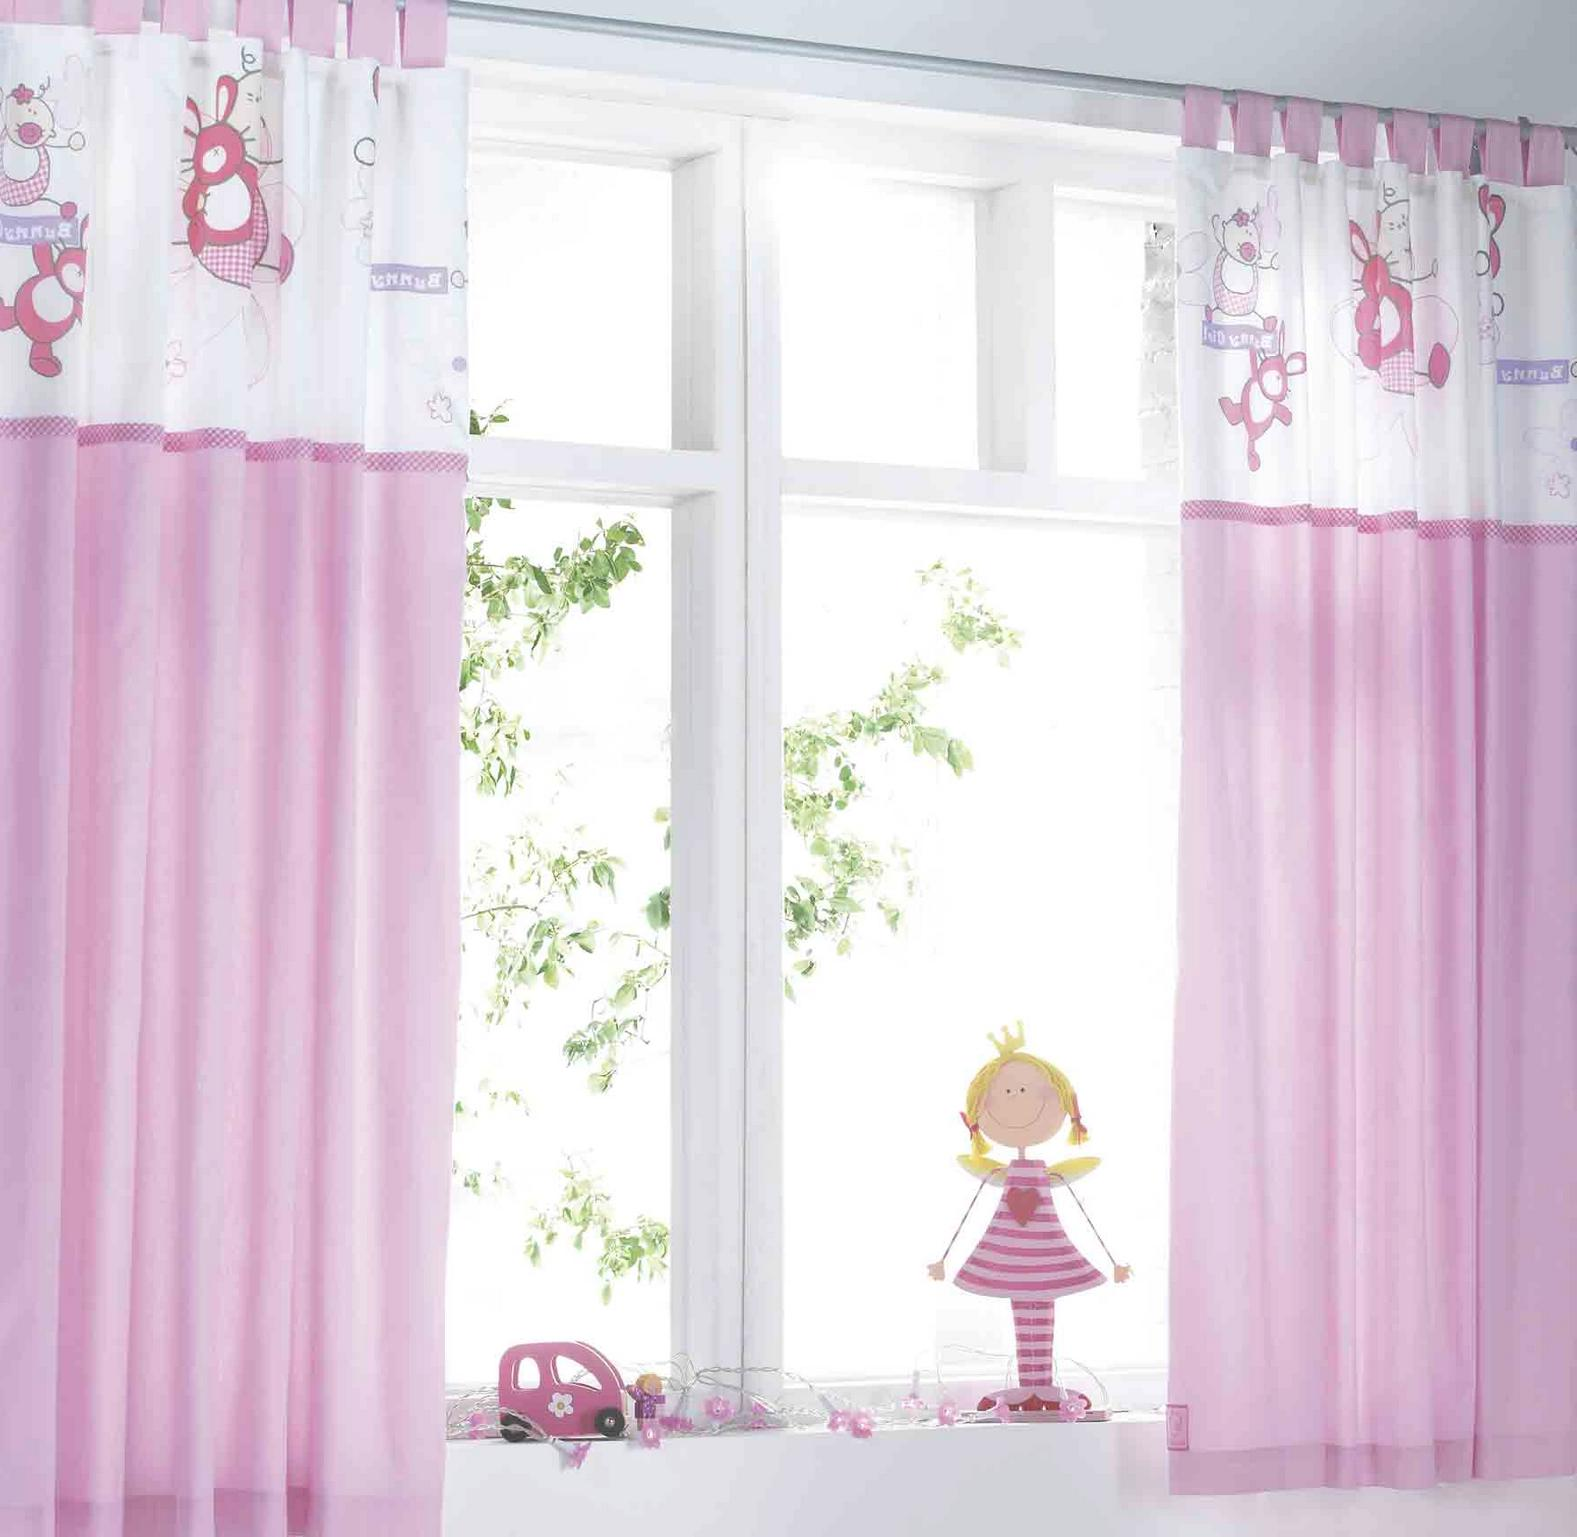 Cute window treatment kids bedroom curtains custom home for Bedrooms curtains photos